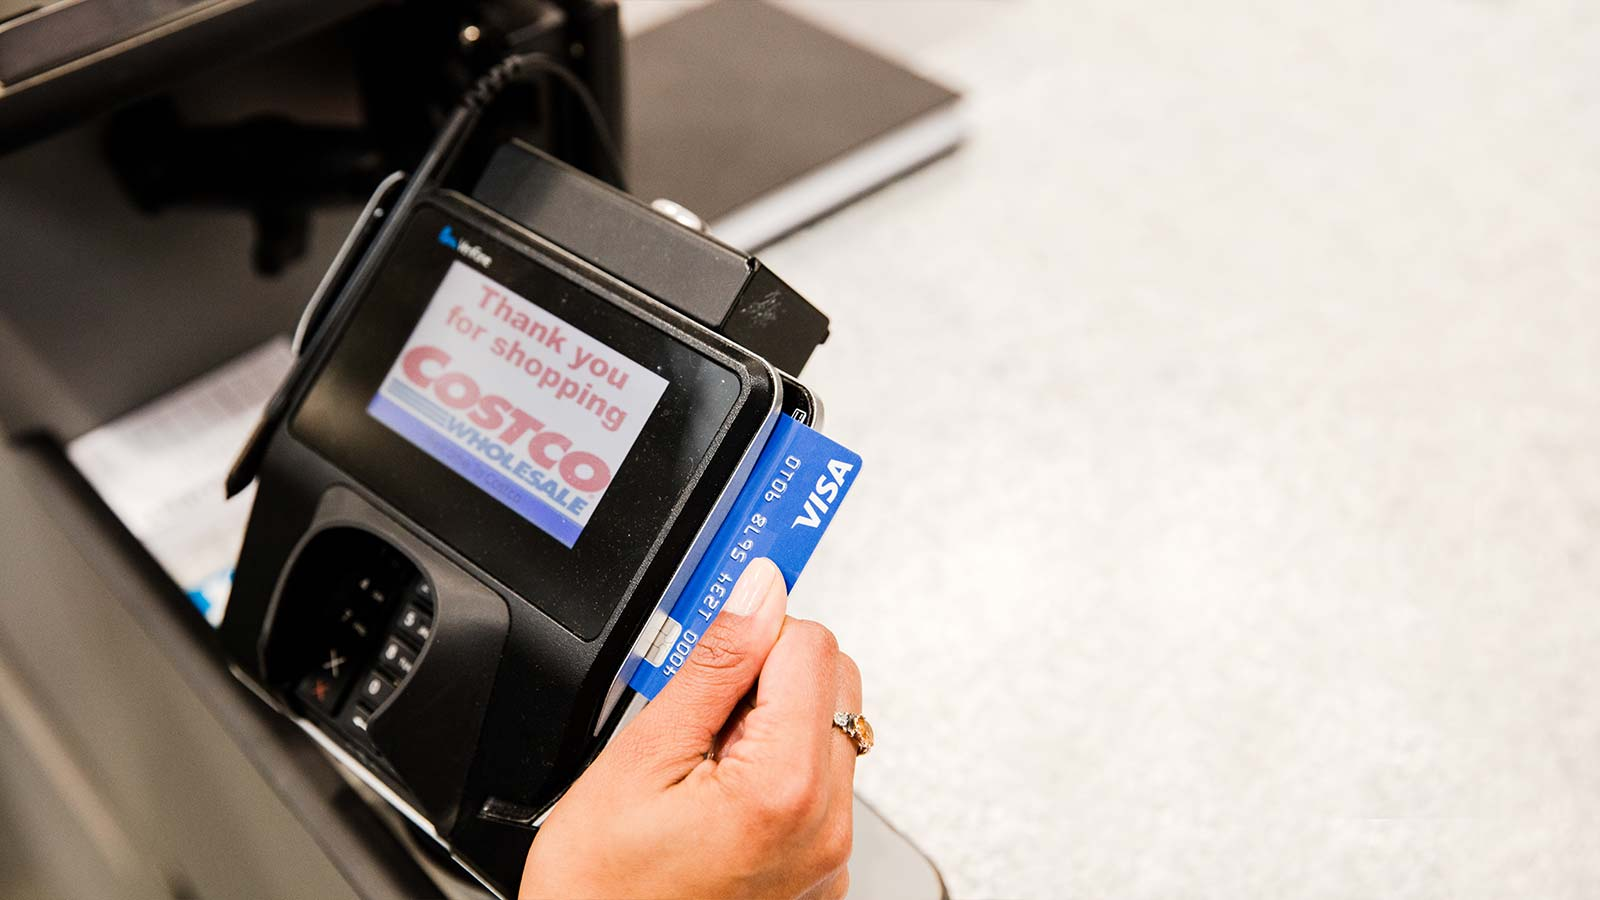 Costco member swiping a Visa card at checkout